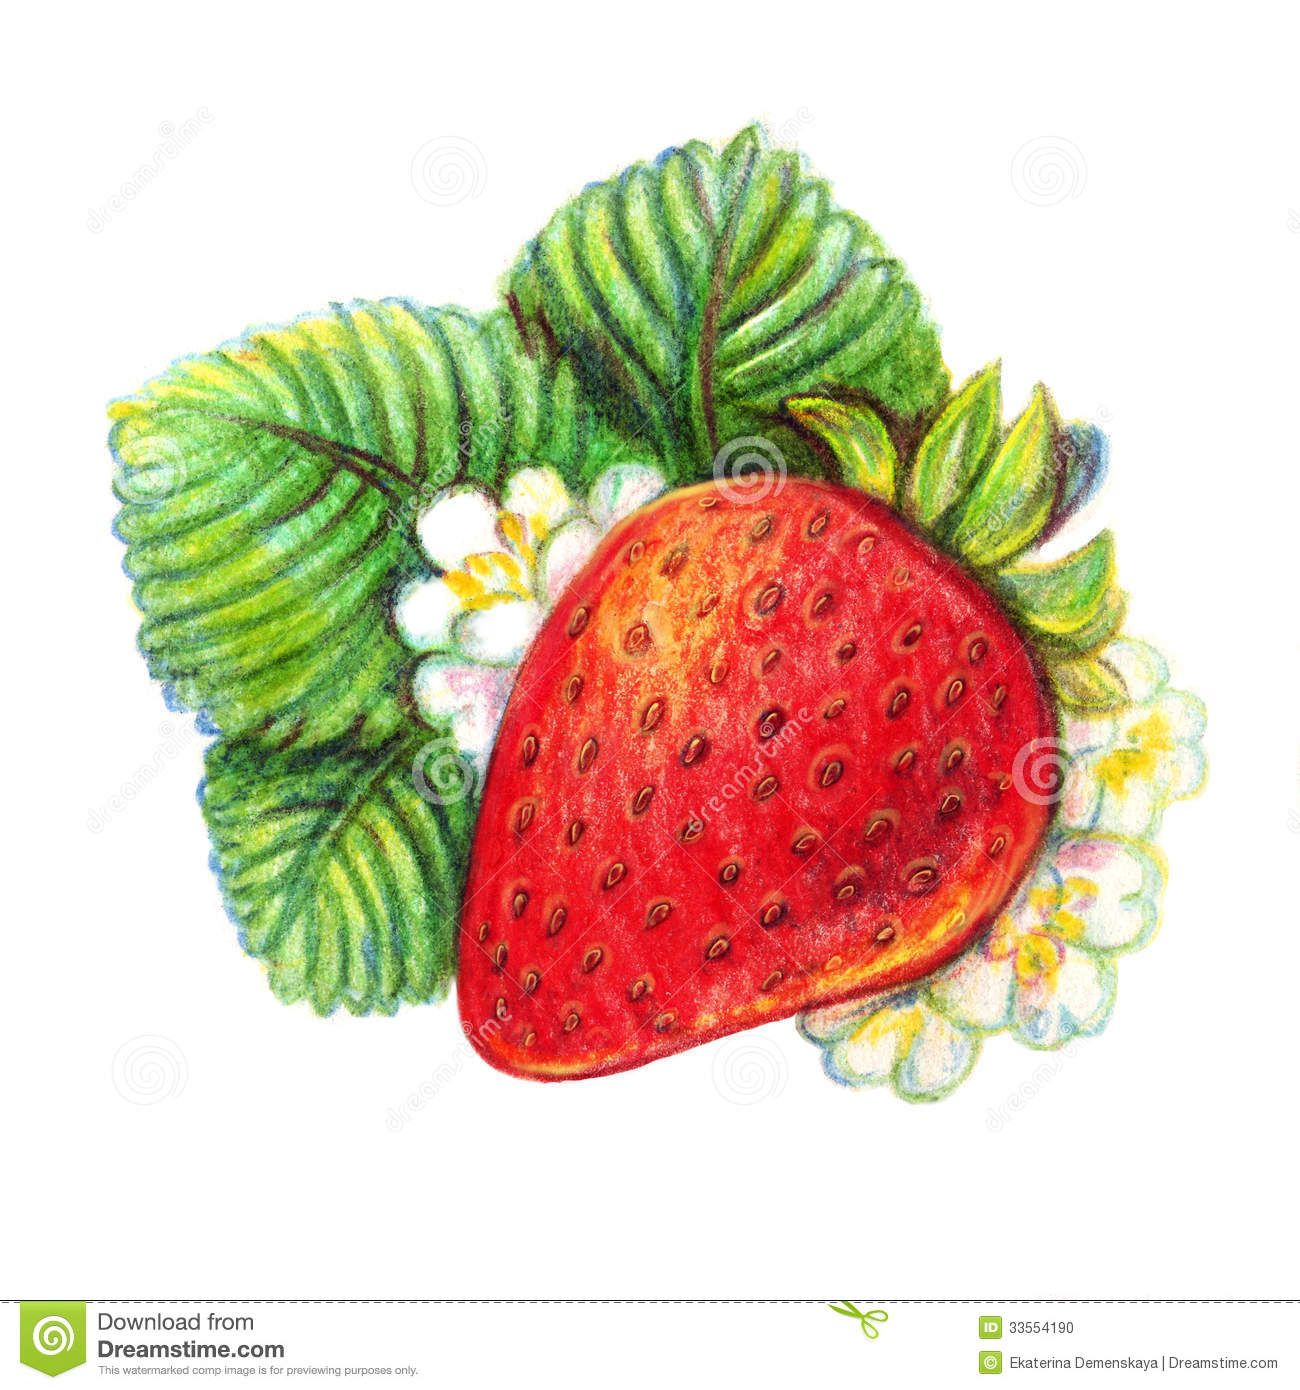 easy color drawings Google Search Fruits drawing